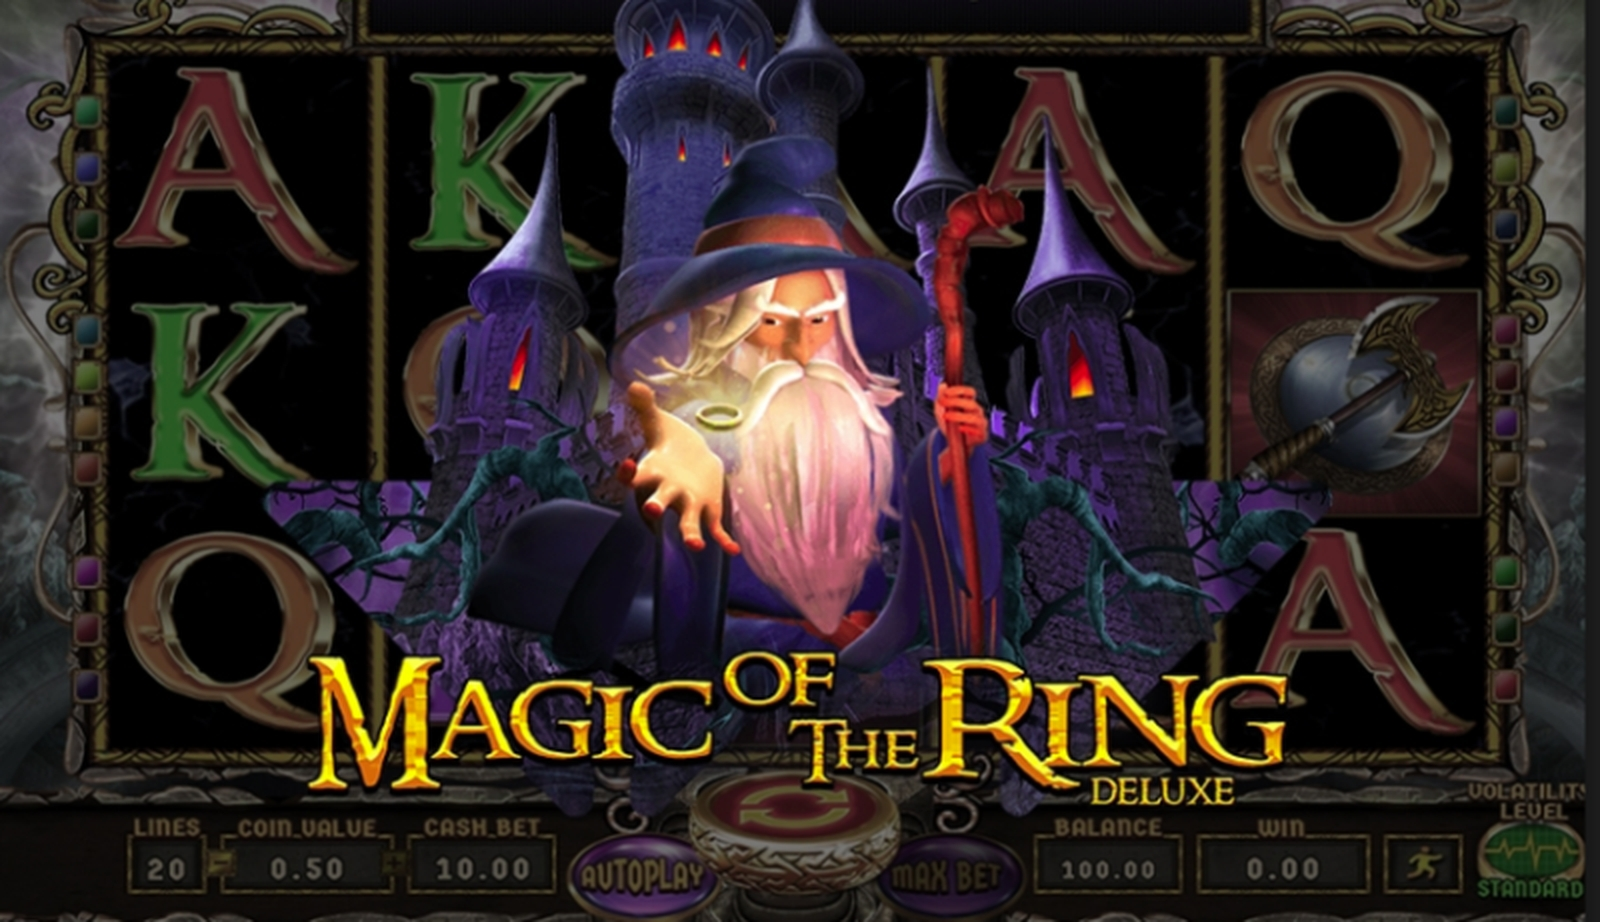 Magic of the Ring Deluxe Online Slot Demo Game by Wazdan